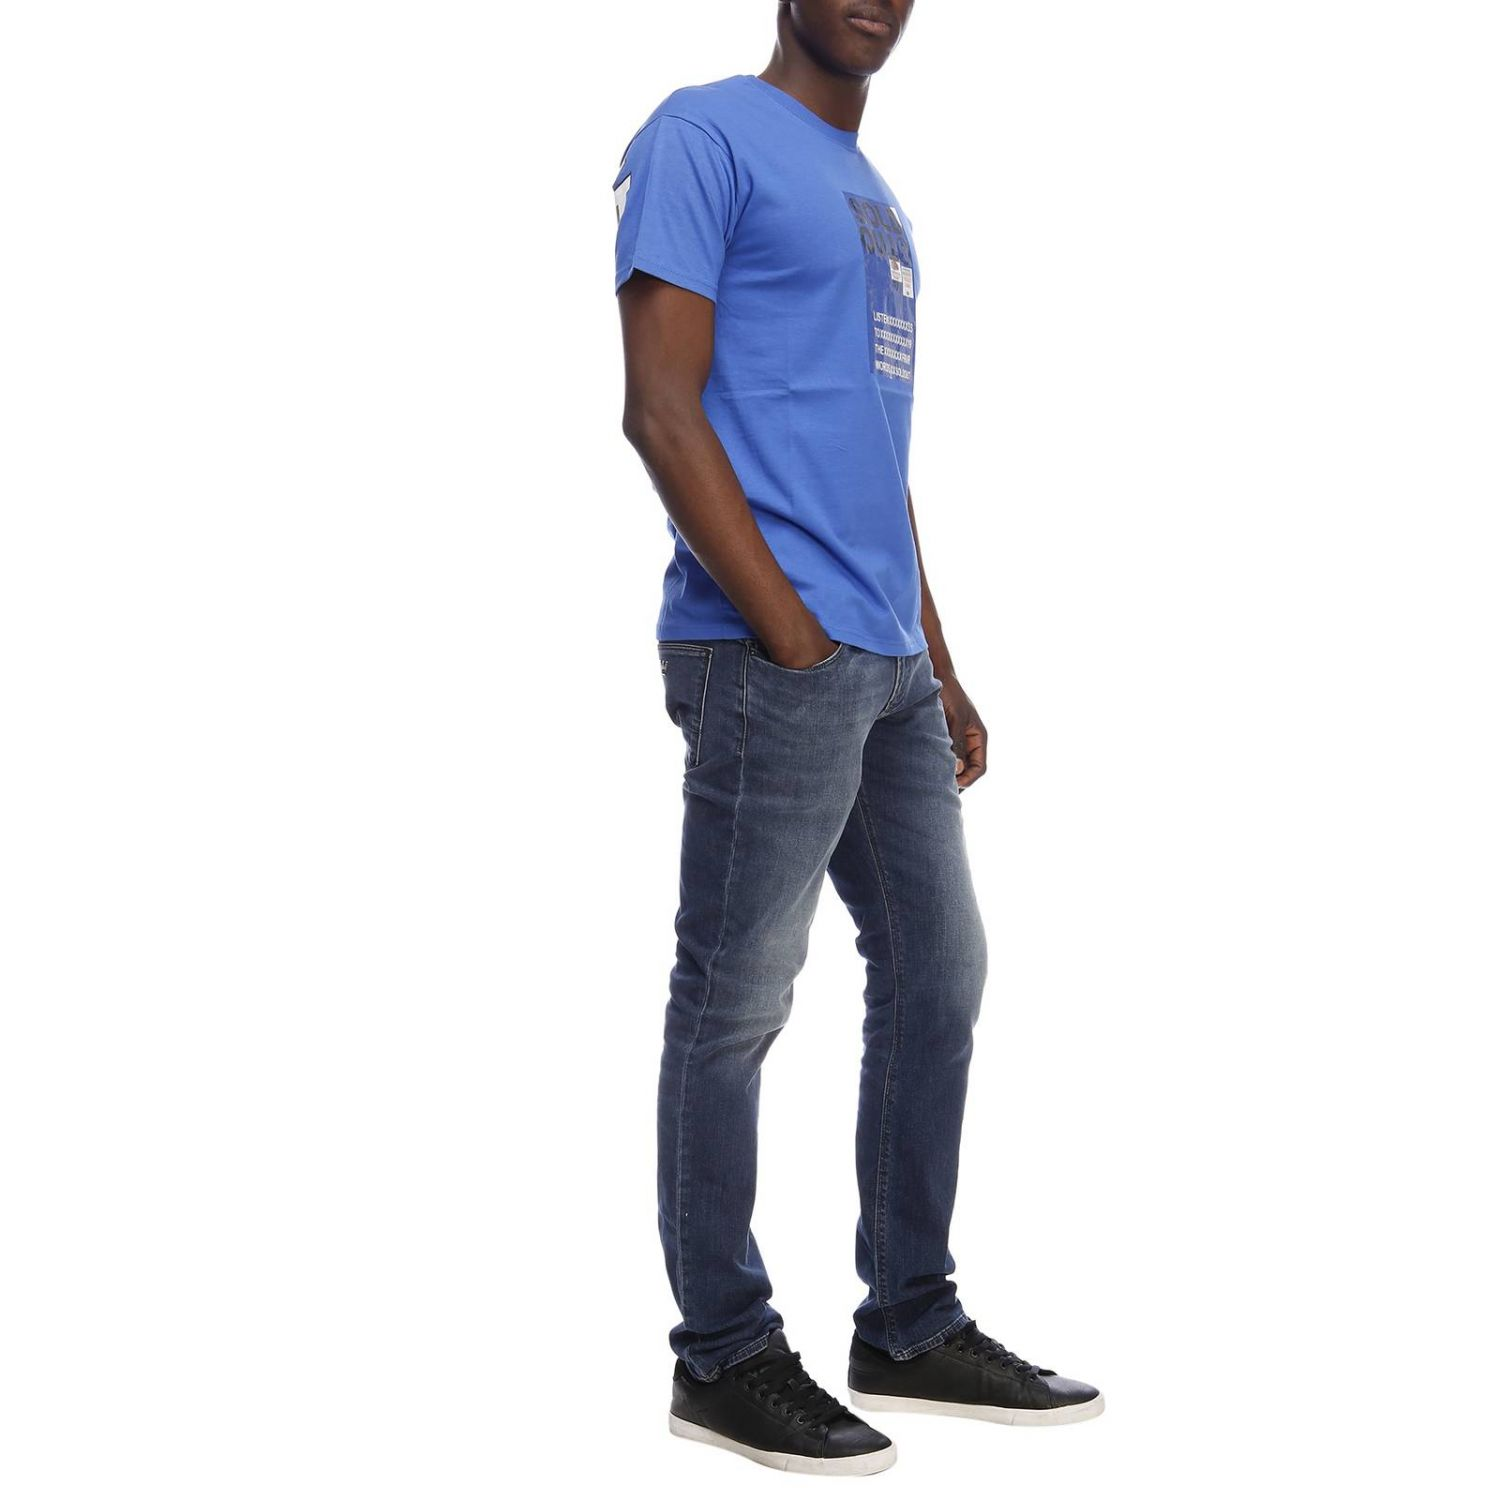 T-shirt homme Sold Out bleu royal 4